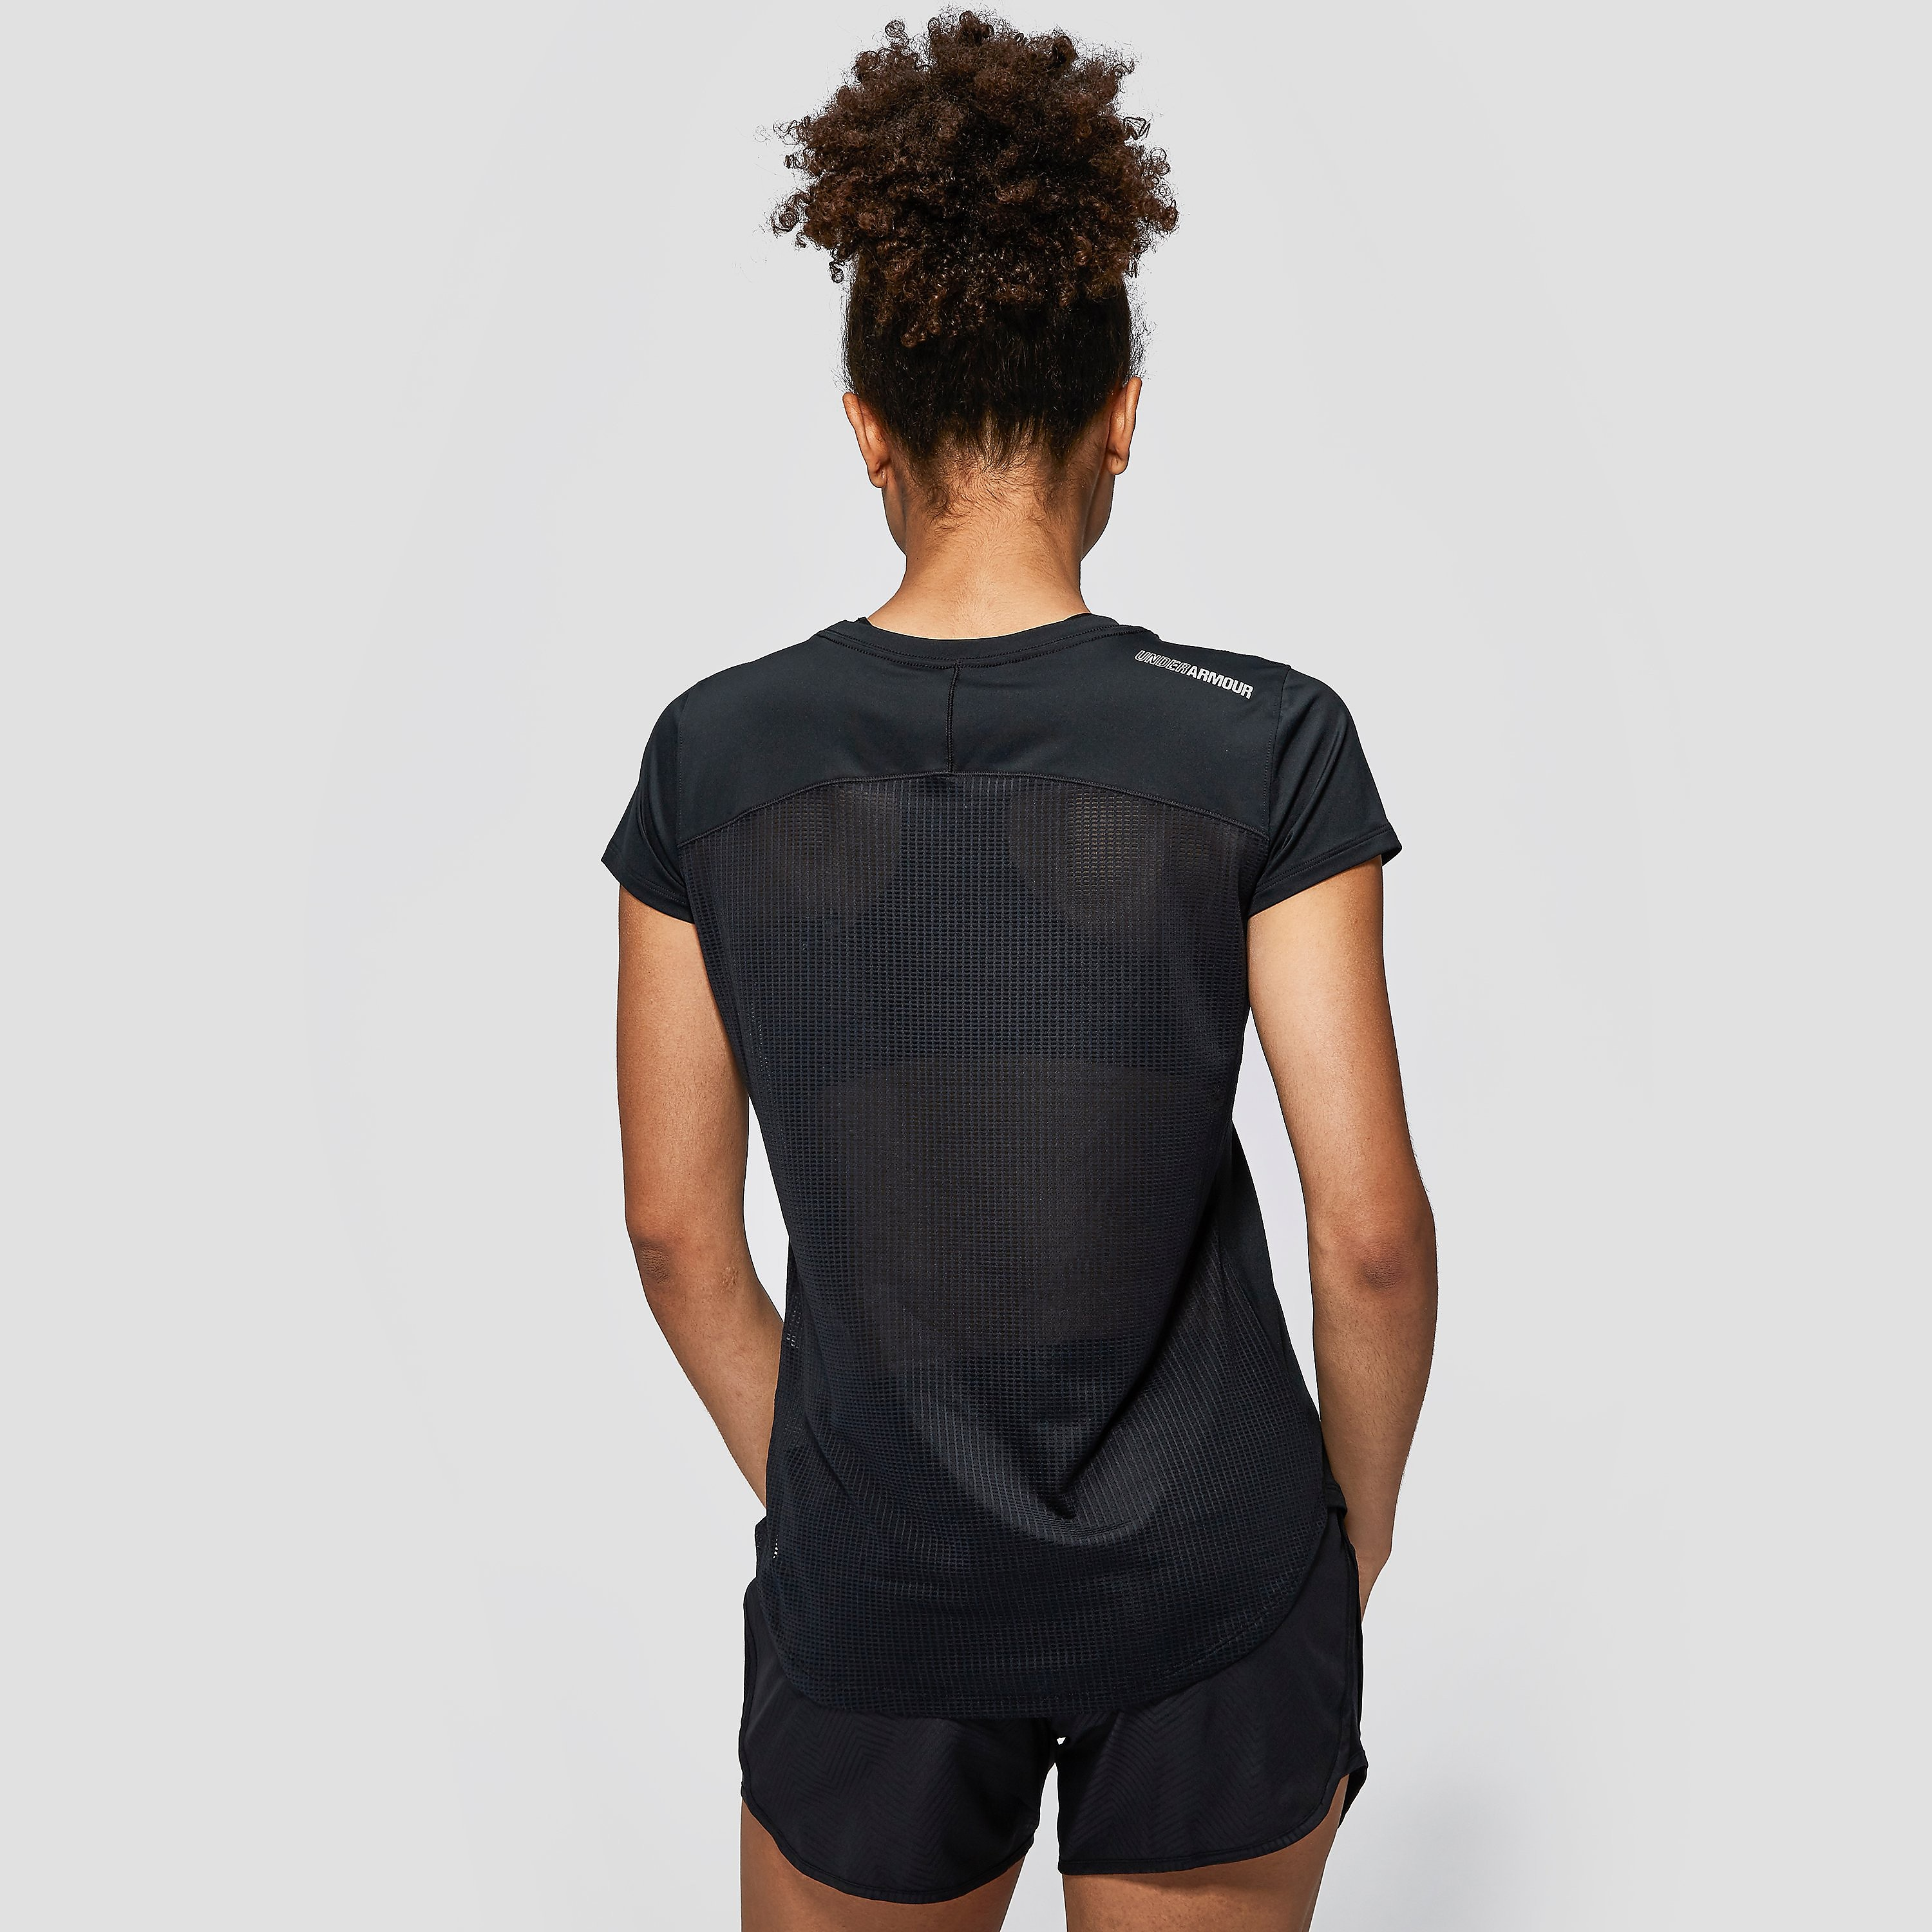 Under Armour UA Fly-By 2.0 Ladies Running Short Sleeve T-Shirt